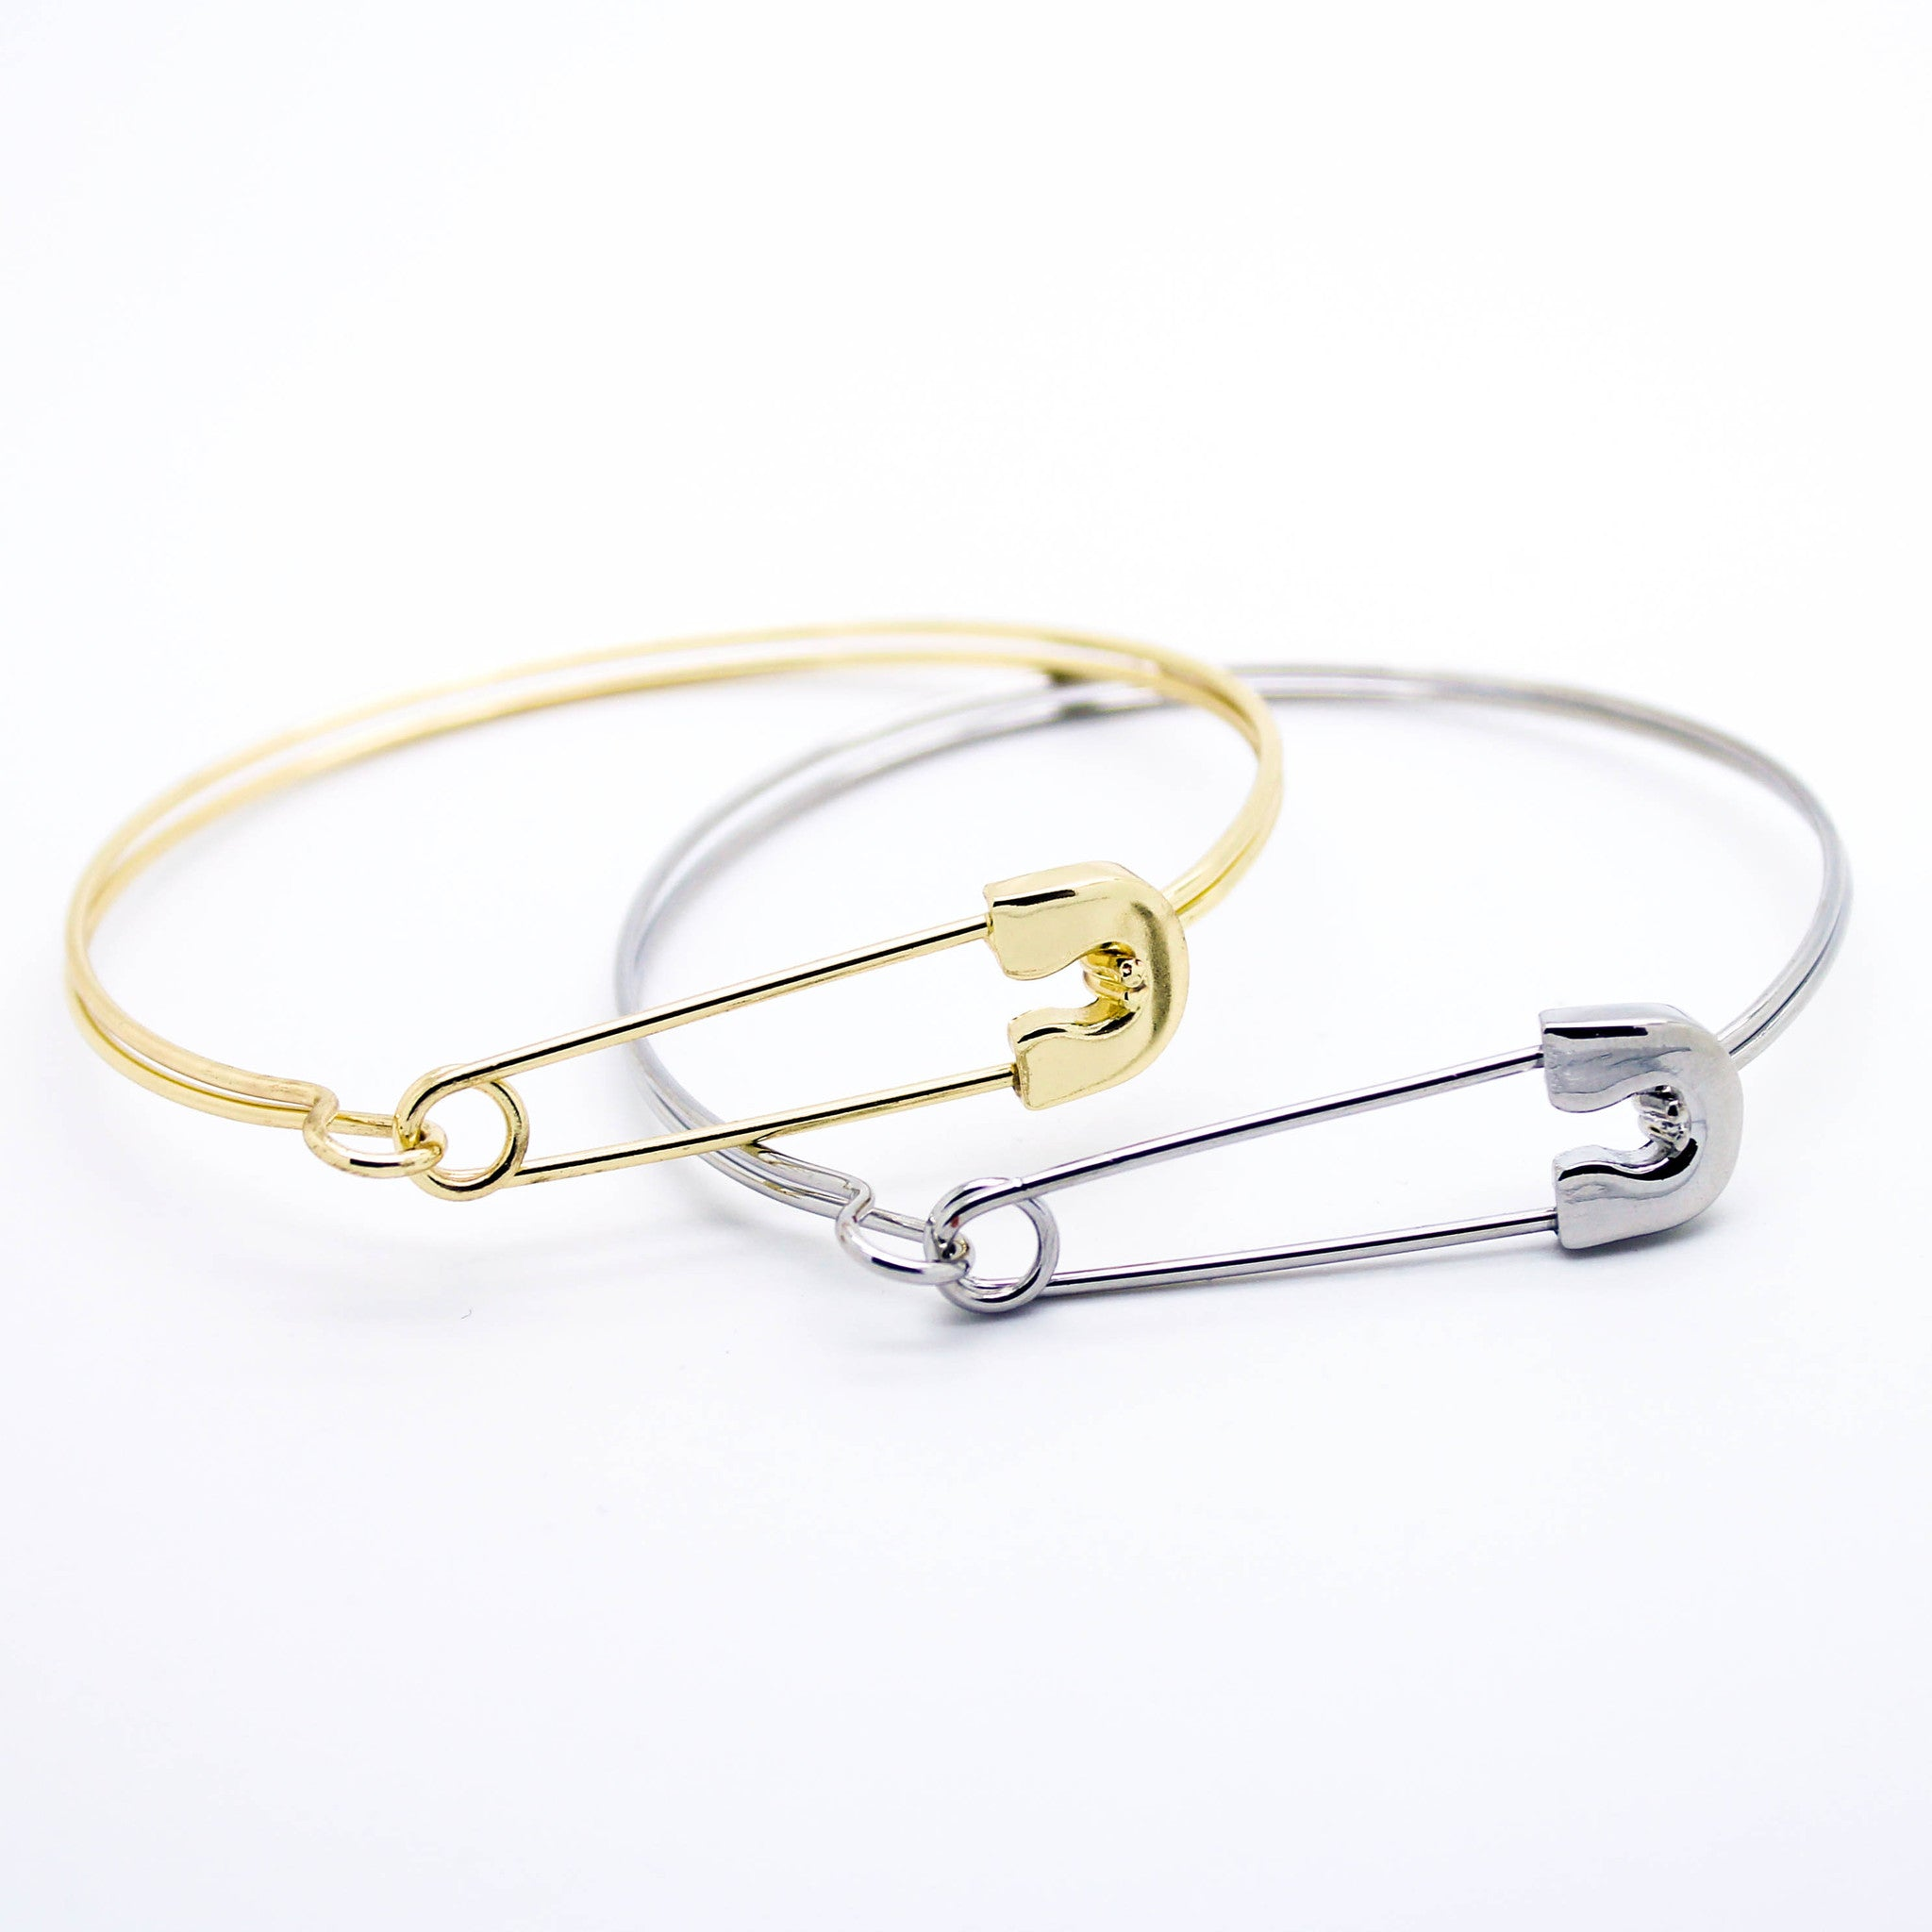 bangle bracelet adjustable products gold bangles white tennis vermeil